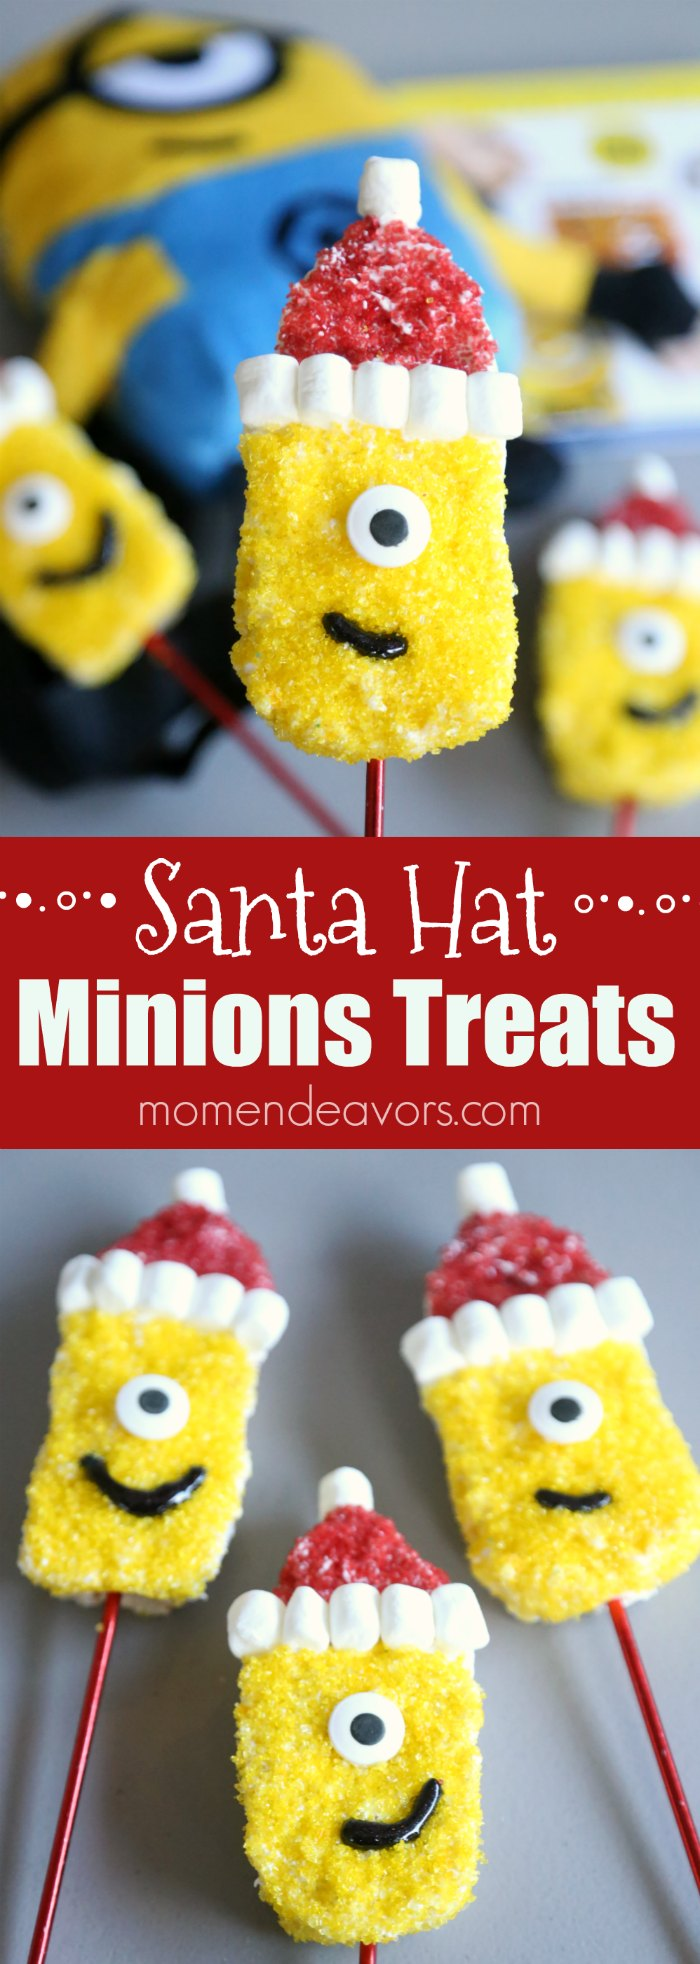 Santa Hat Minions Treats